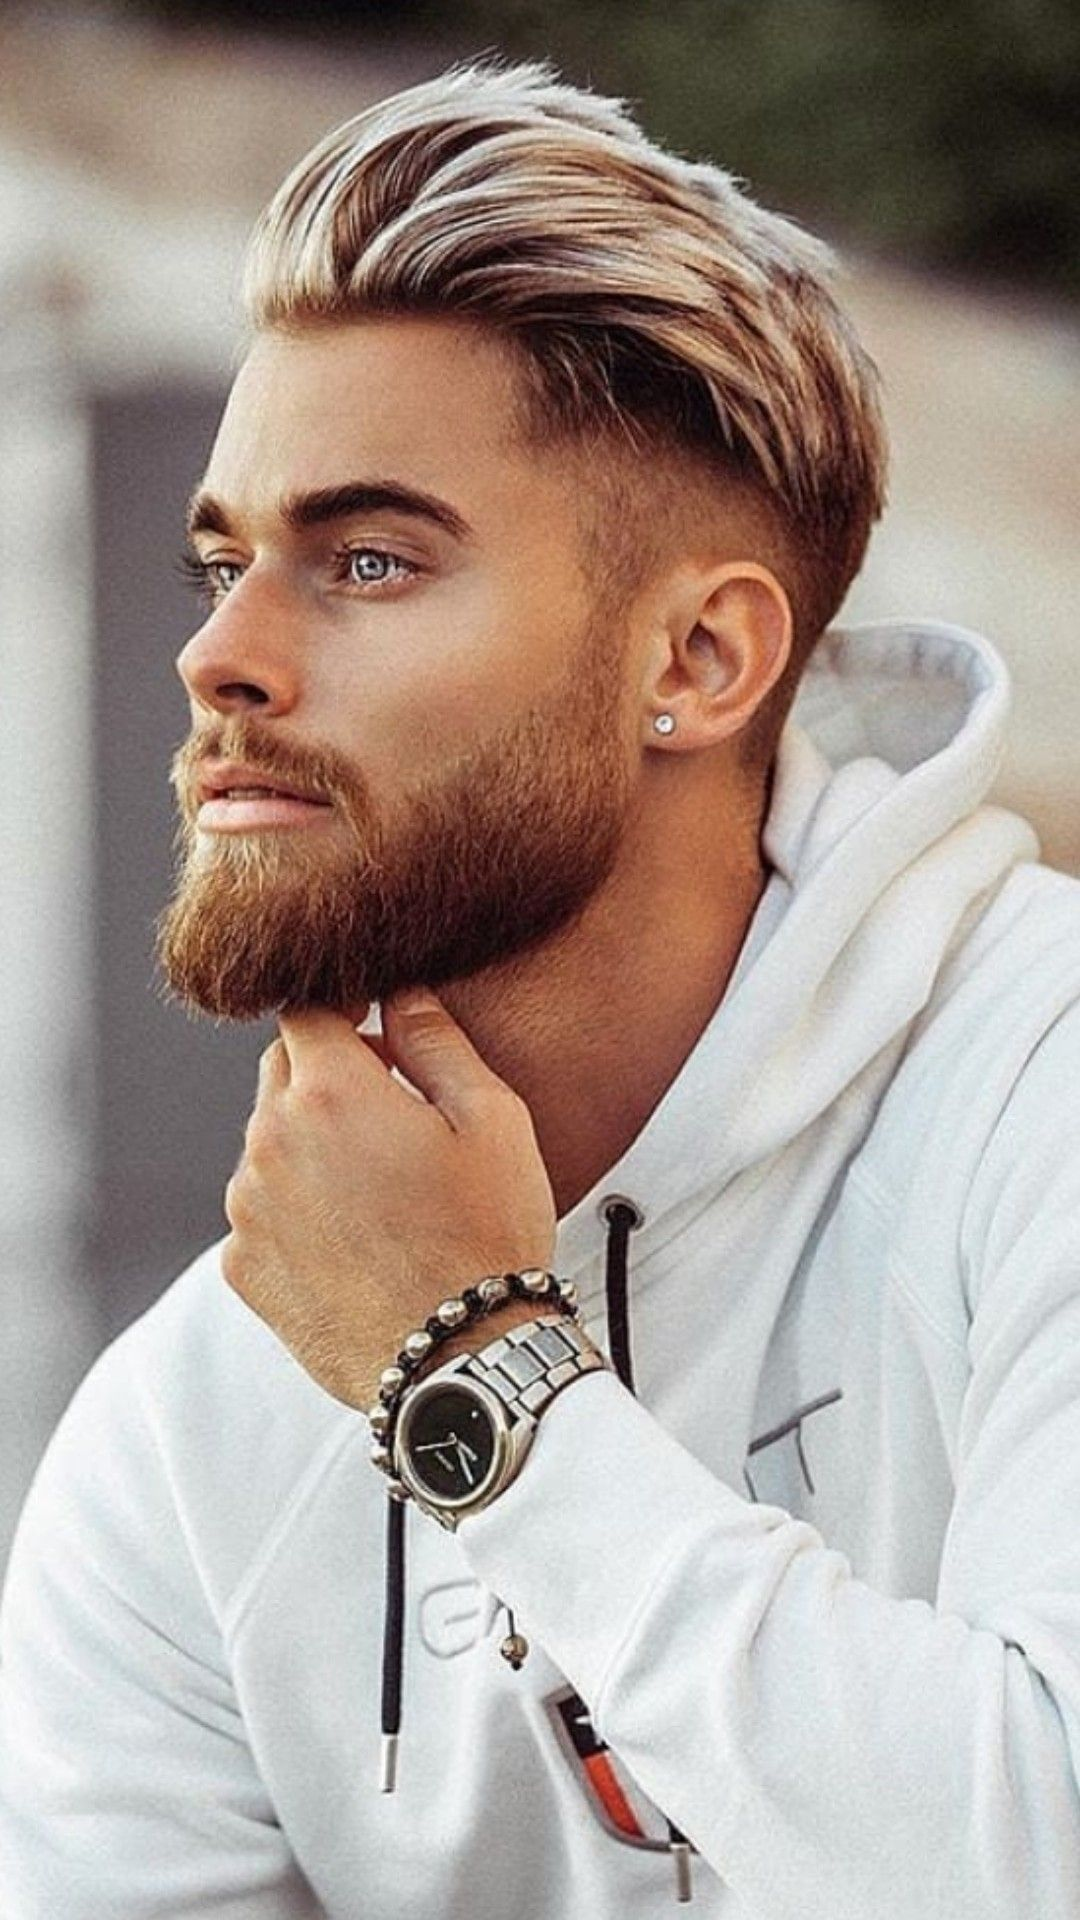 98 Awesome Layered Haircuts For Men 2019 Medium Beard Styles Mens Haircuts Short Mens Hairstyles Medium